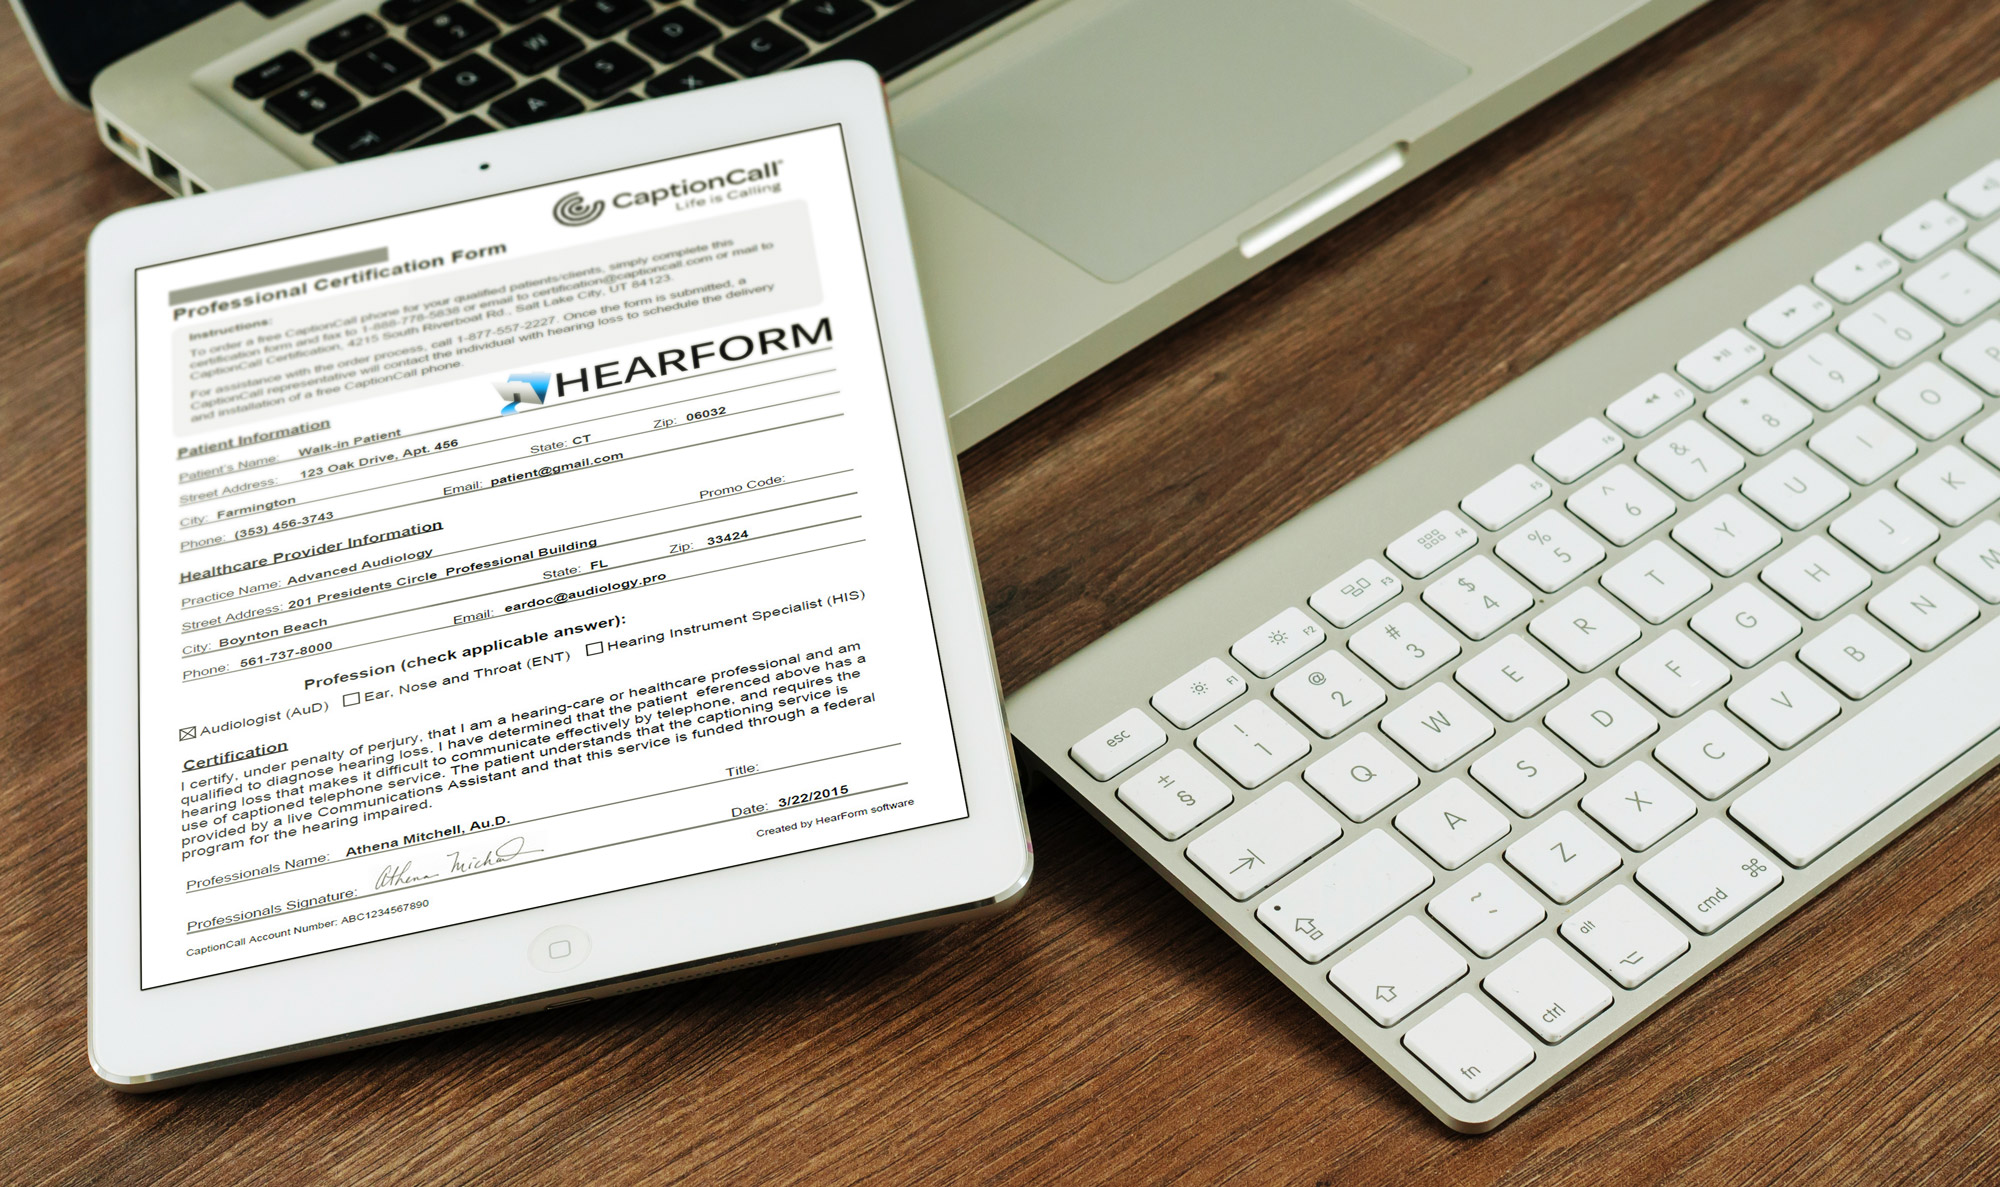 iPad CaptionCall 2000?resize=1200%2C712 hearform audiology software  at panicattacktreatment.co